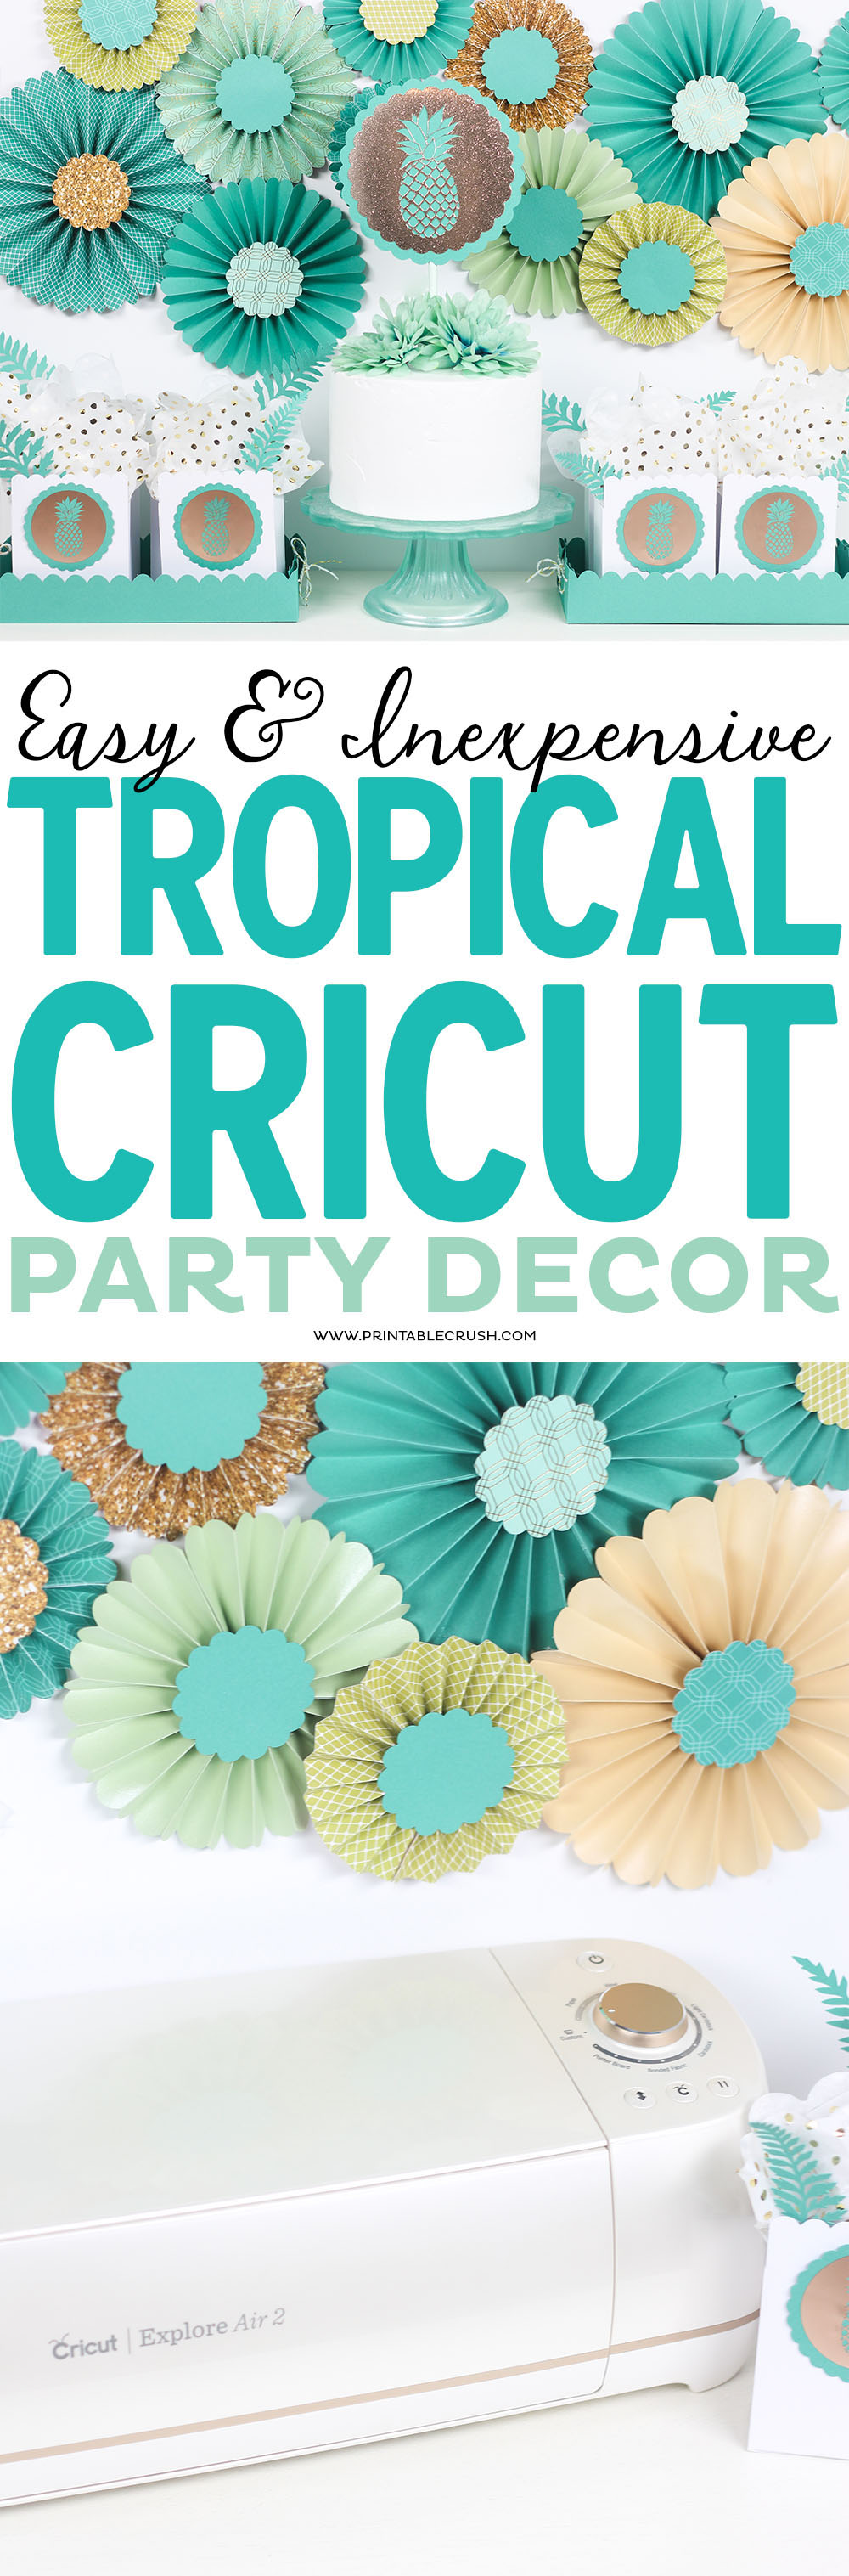 This tropical Cricut party decor is so simple to create with the new graphics included in the Martha Stewart Cricut Explore Air found at Michaels stores!